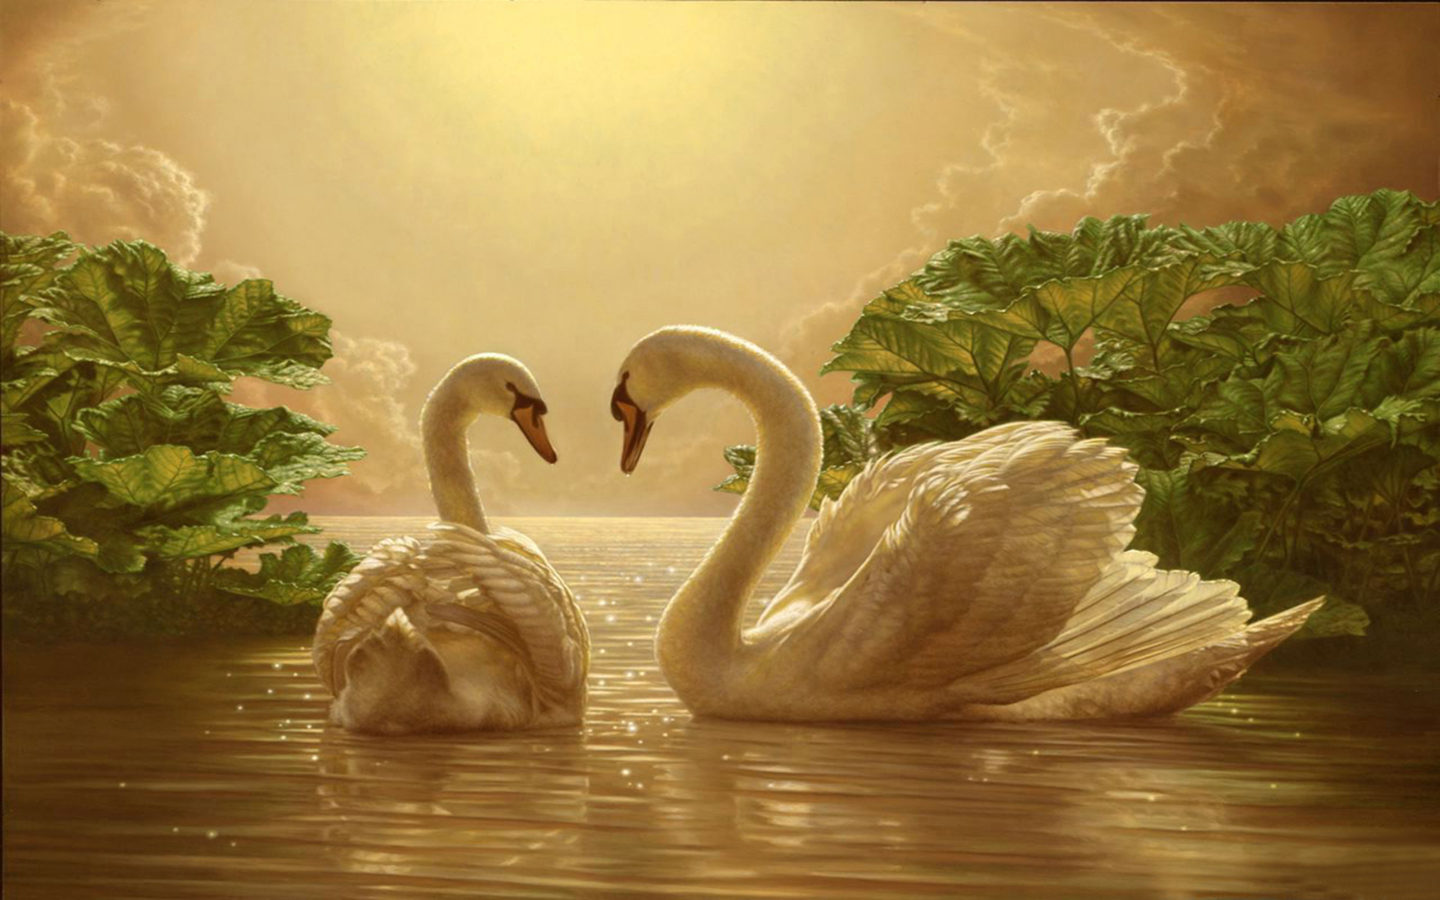 Stunning Black Wallpapers Beautiful Love Swan Two Romance Movie Wallpapers 2880 215 1800